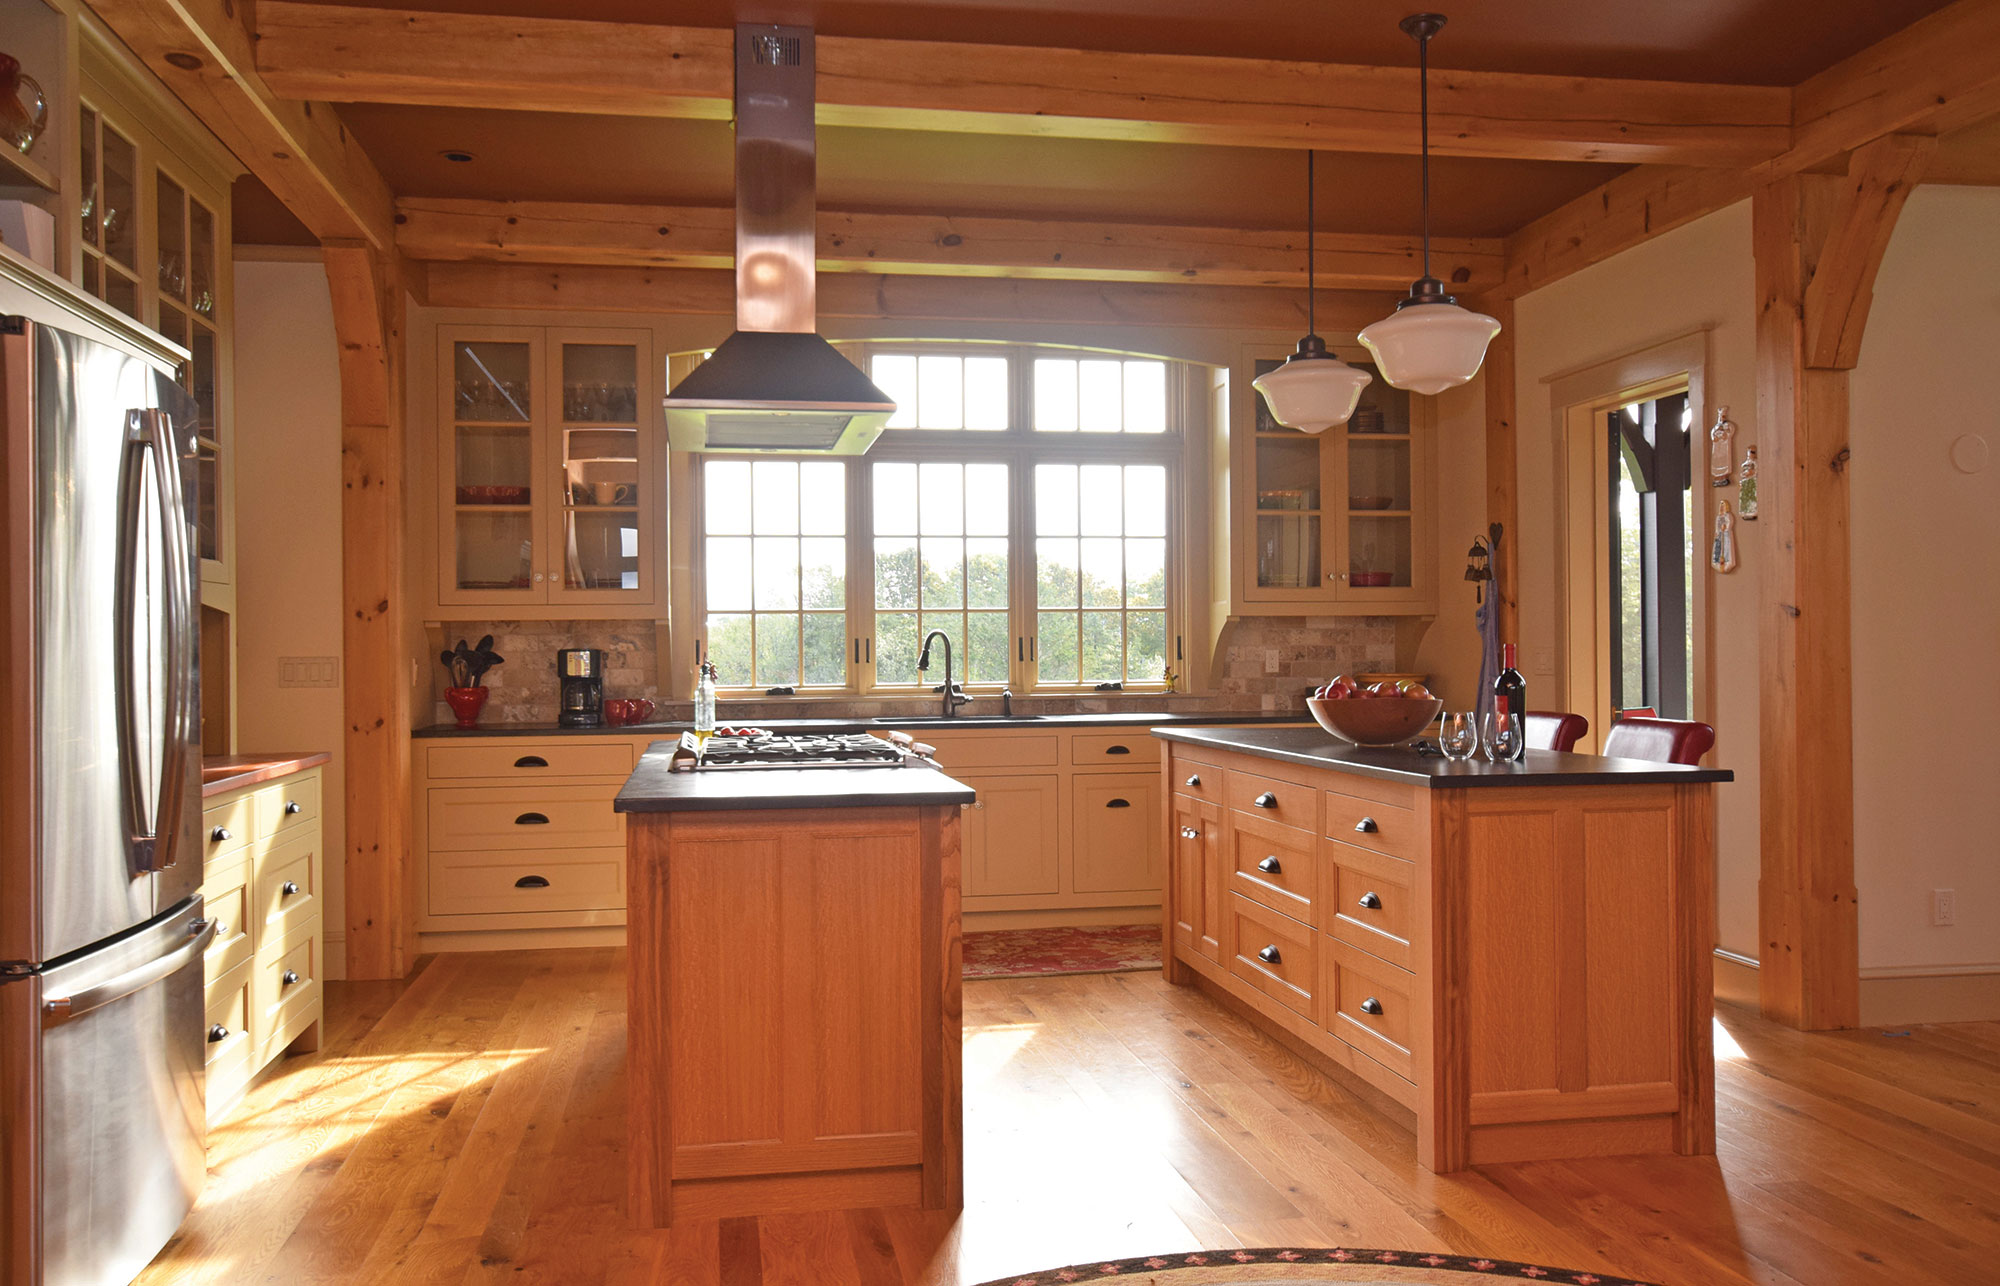 Post & Beam Kitchen - Natural wood islands and a beautiful painted finish on the surrounding cabinets combine to create a truly elegant kitchen in this post & beam home. More pictures